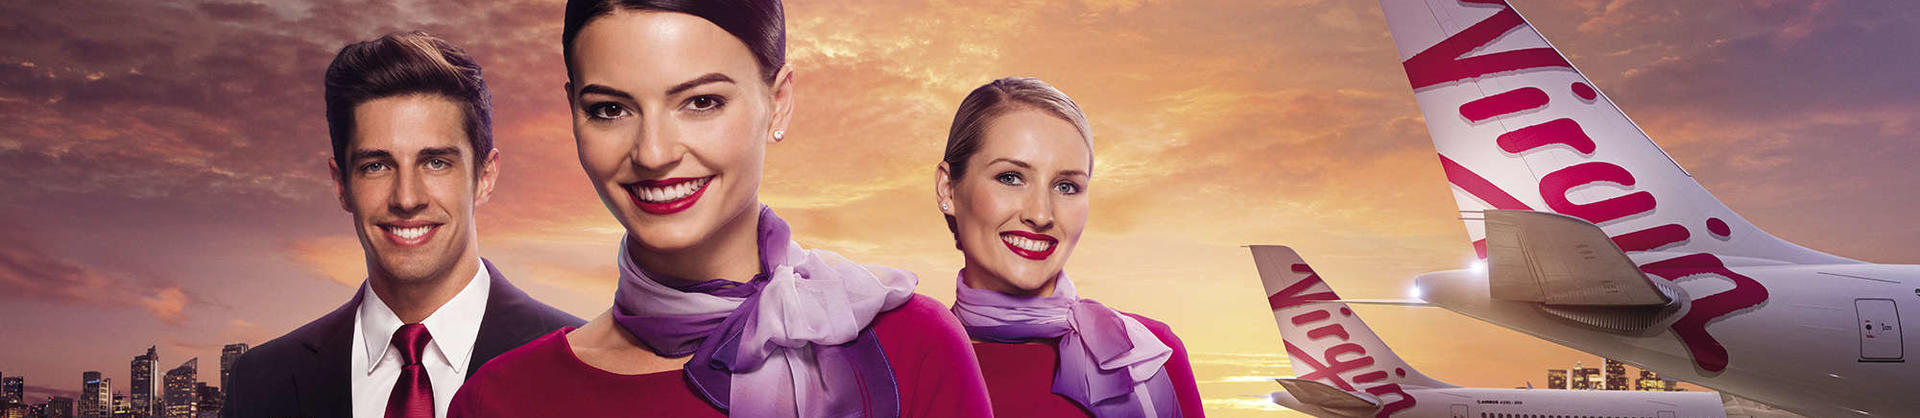 Virgin Australia aircraft and crew